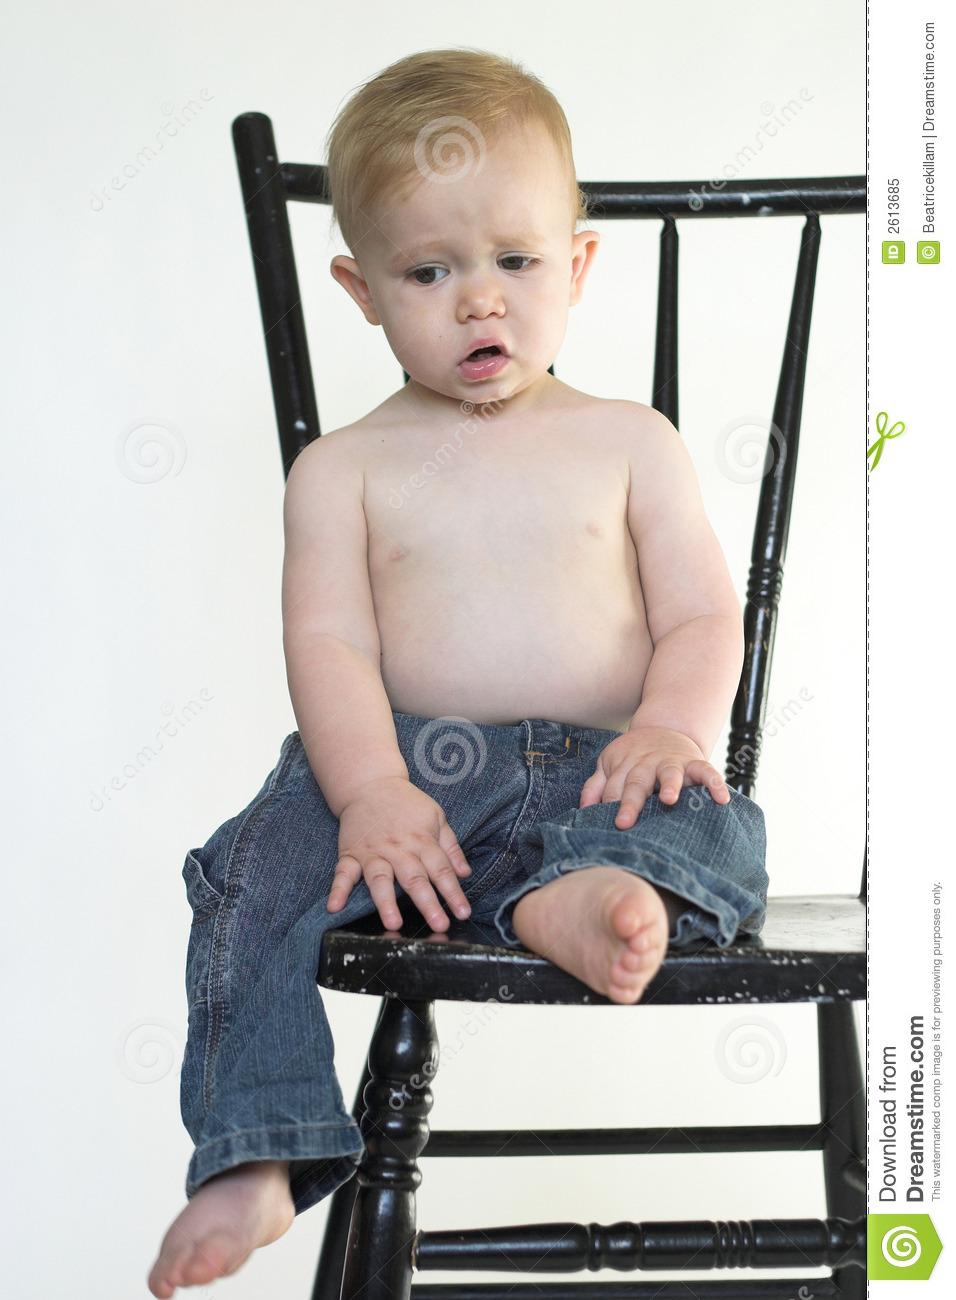 Boy on a chair royalty free stock photo image 2613685 for Toddler sitting chair